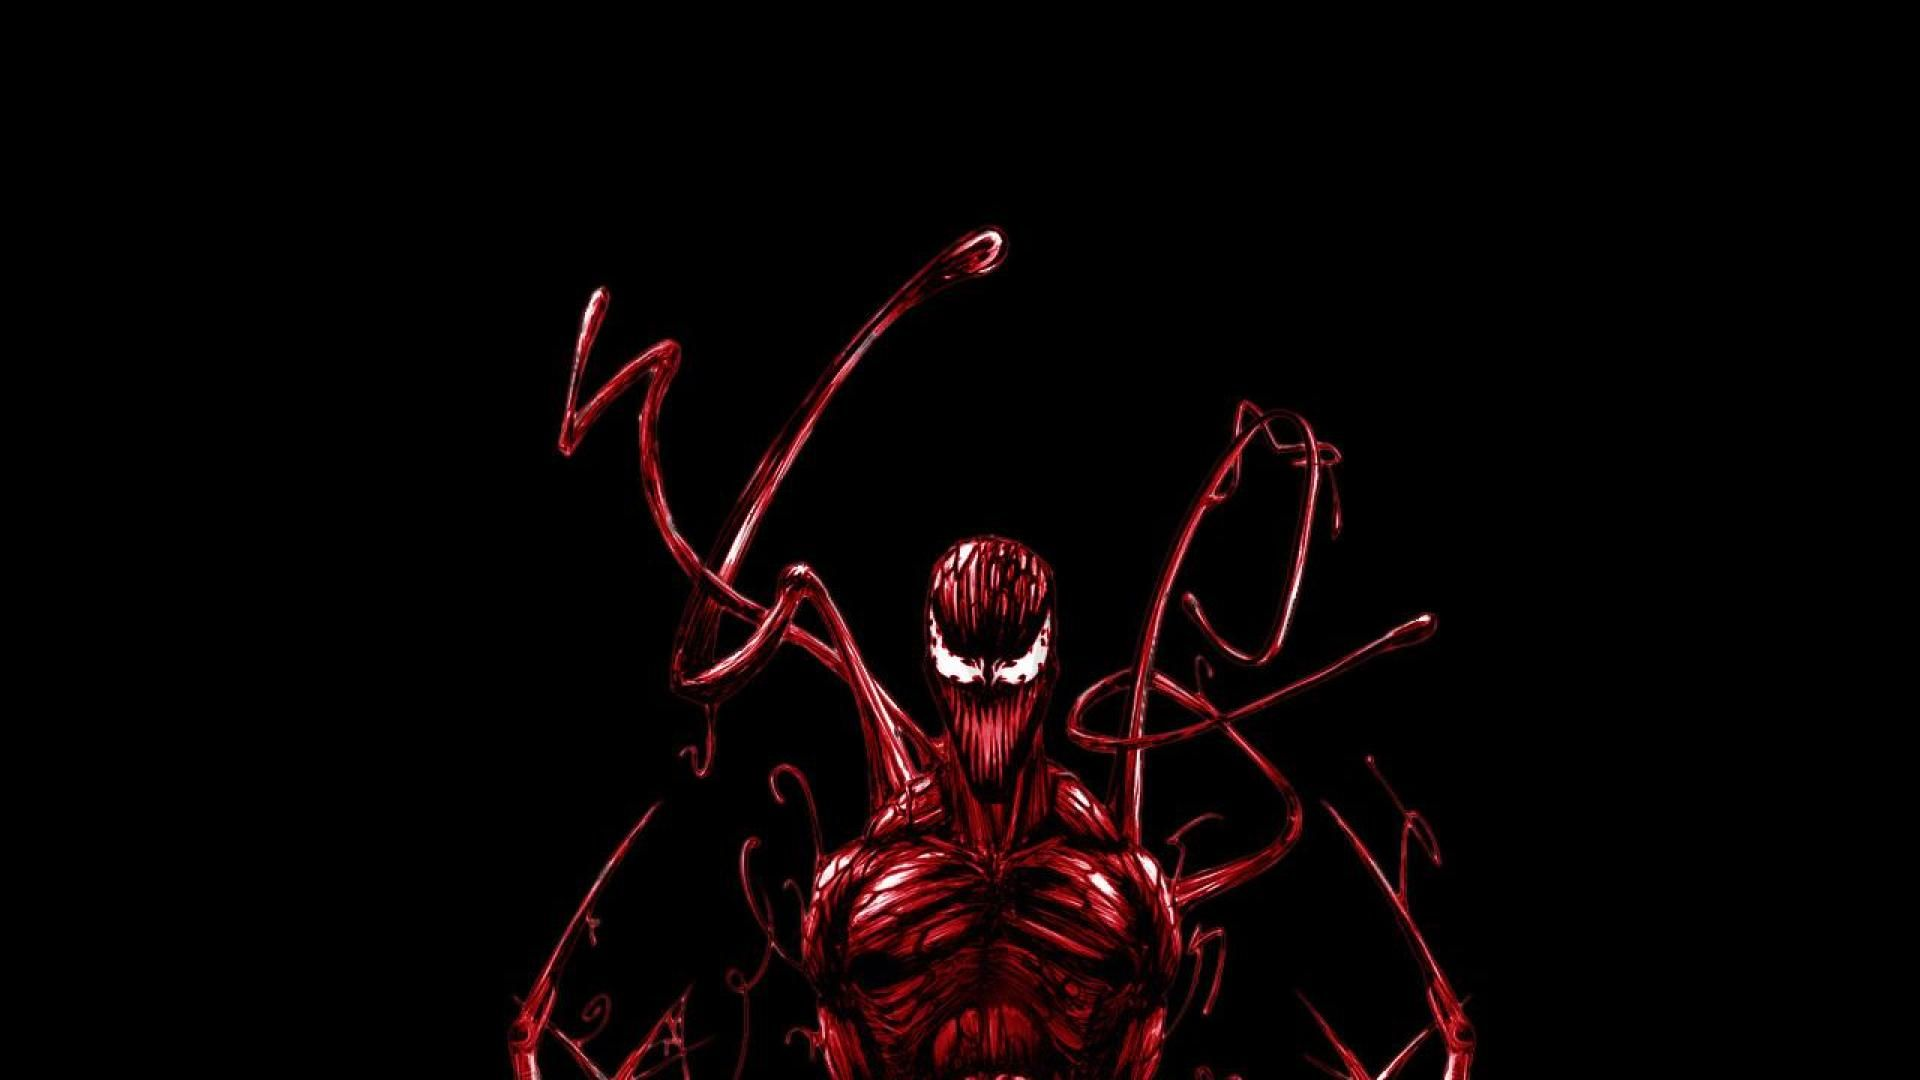 Carnage Phone Wallpapers Top Free Carnage Phone Backgrounds